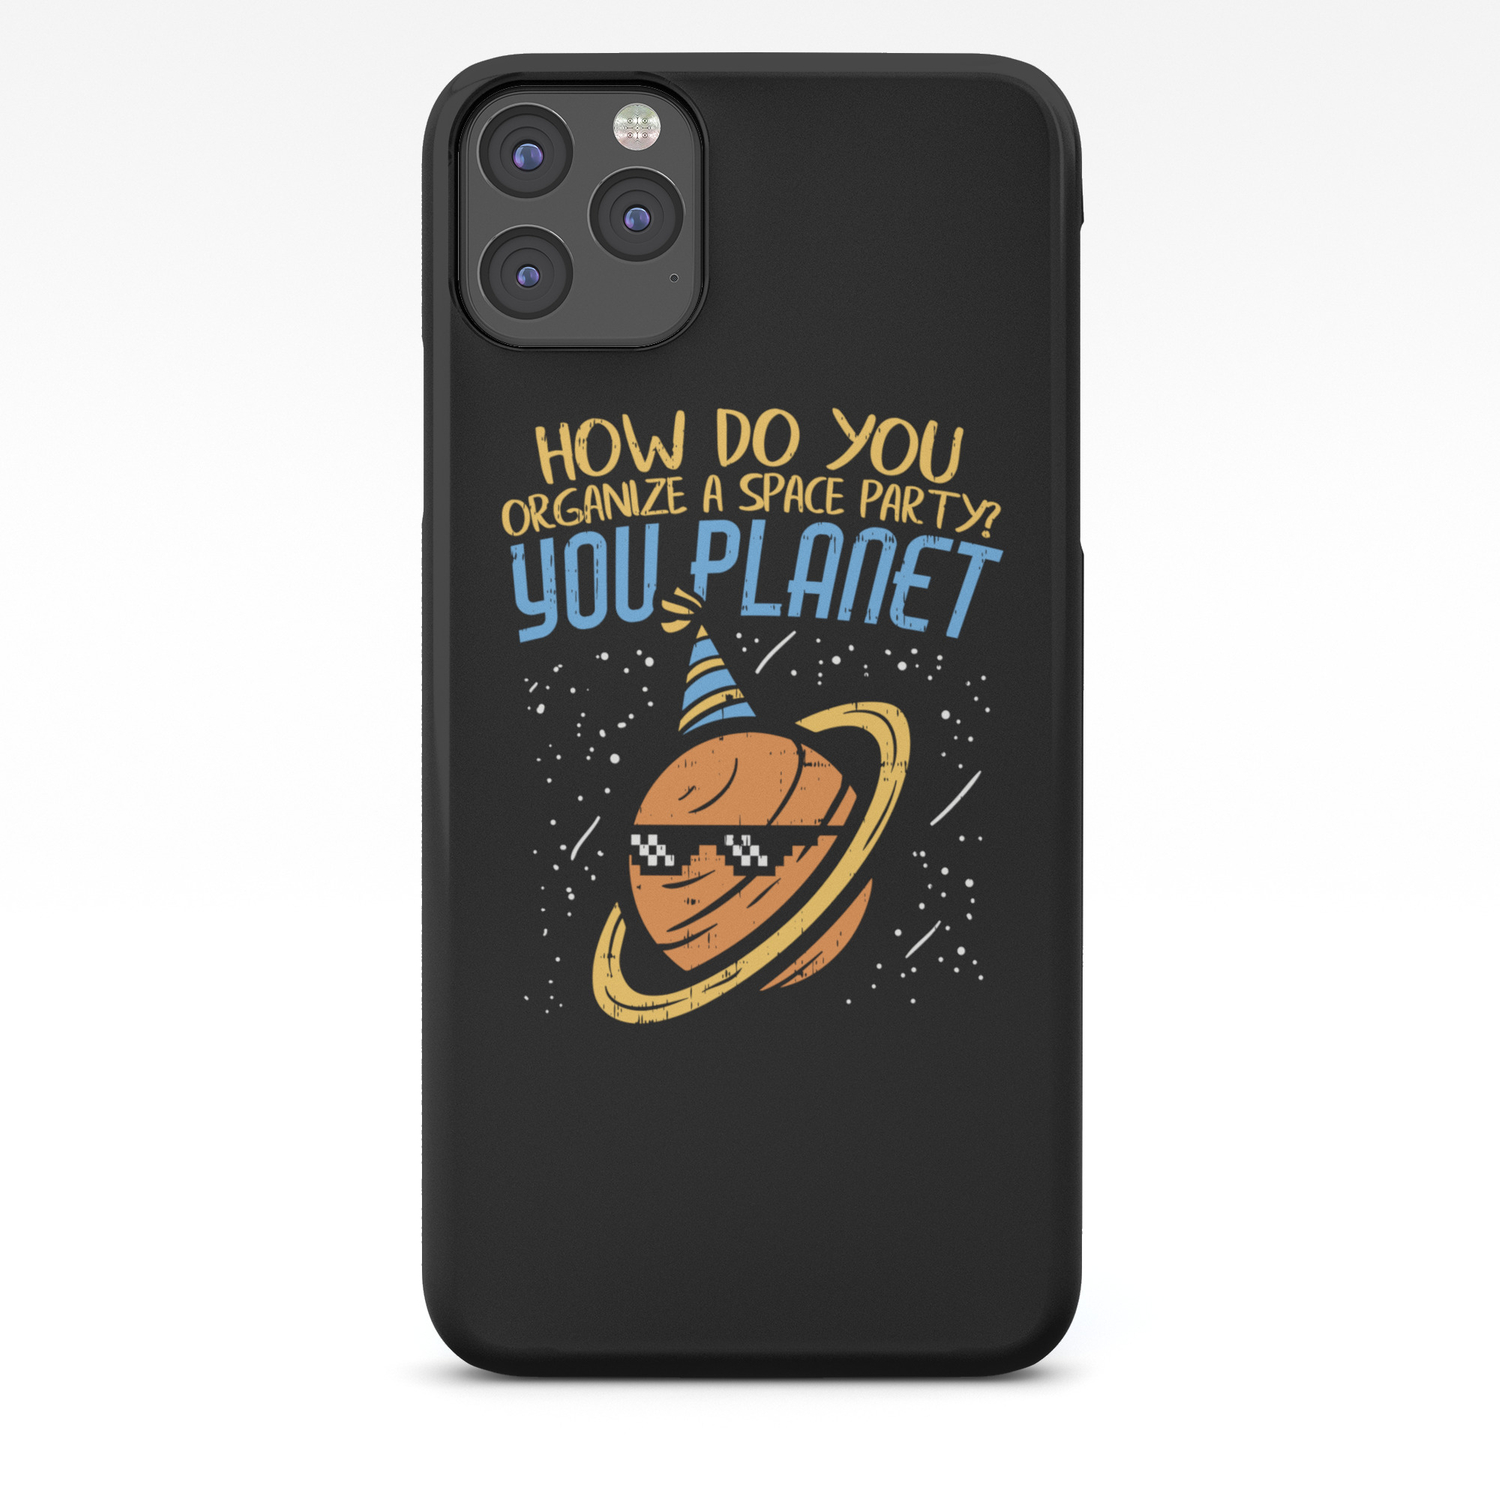 How Do You Organize A Space Party You Planet Funny Illustration